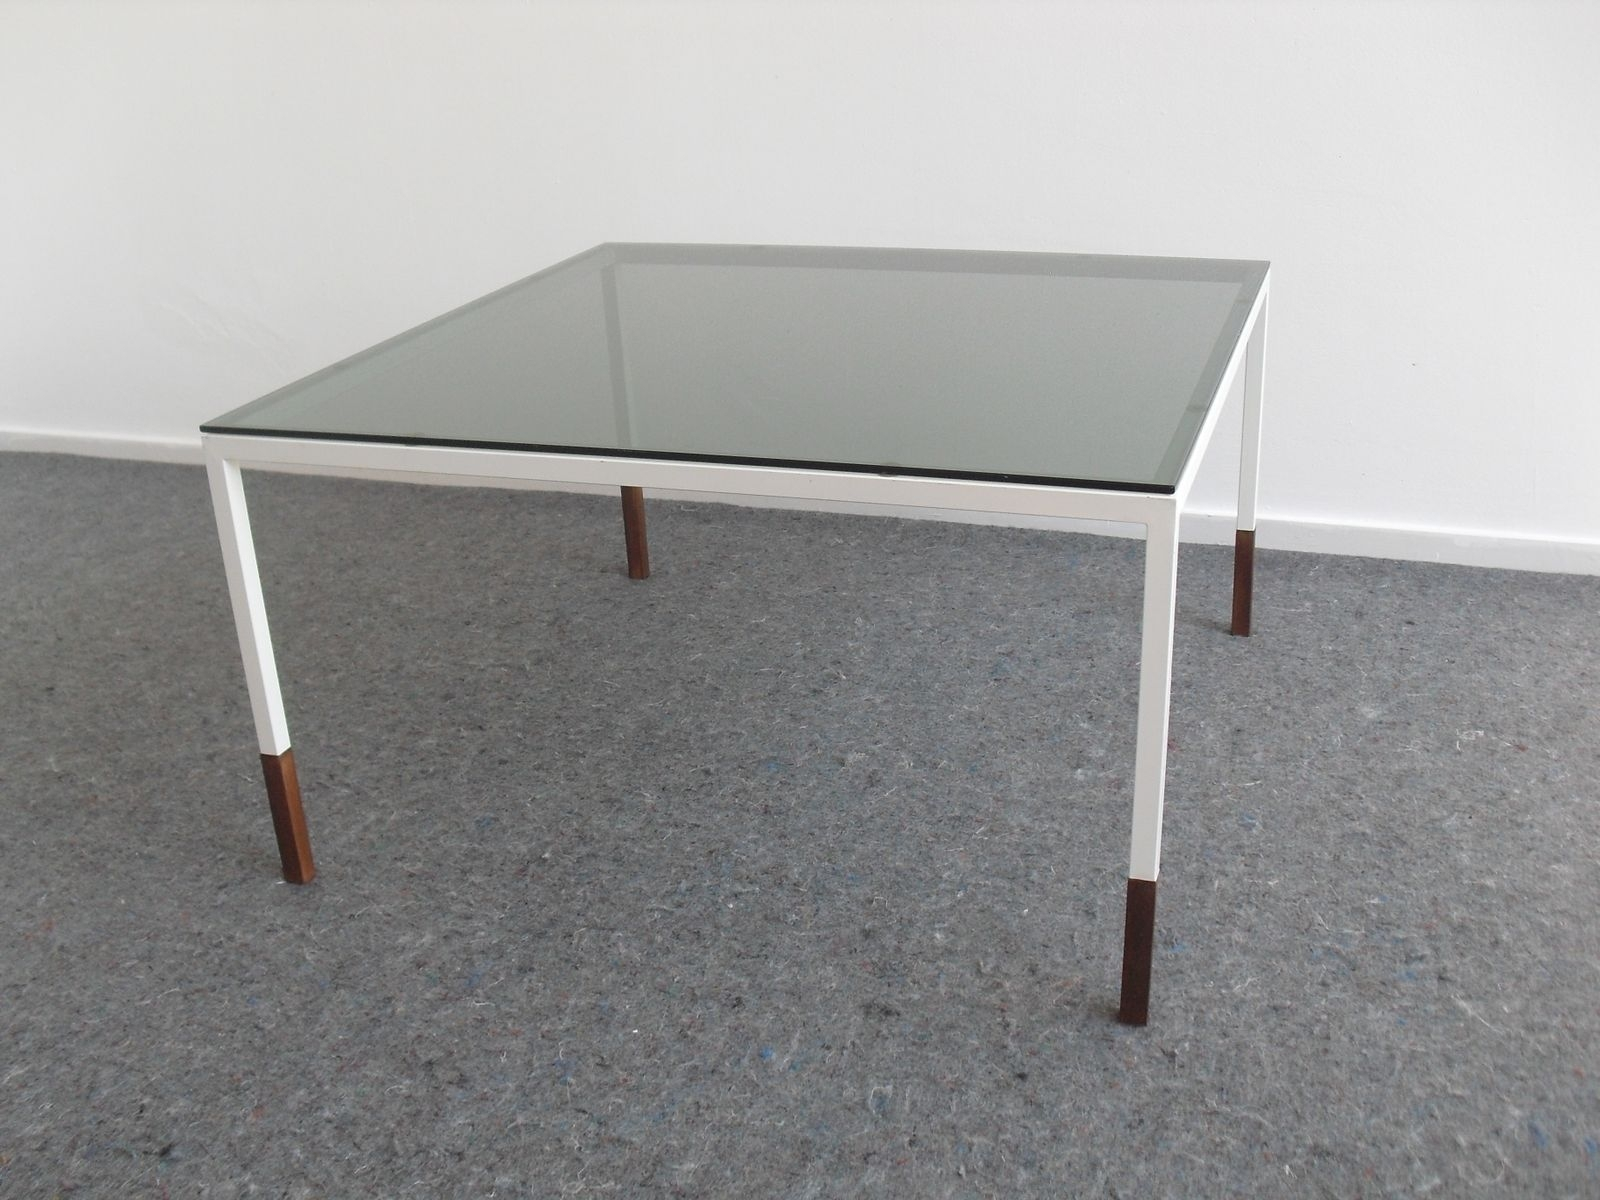 Dutch Minimalist Coffee Table, 1960S For Sale At Pamono with regard to Minimalist Coffee Tables (Image 4 of 30)